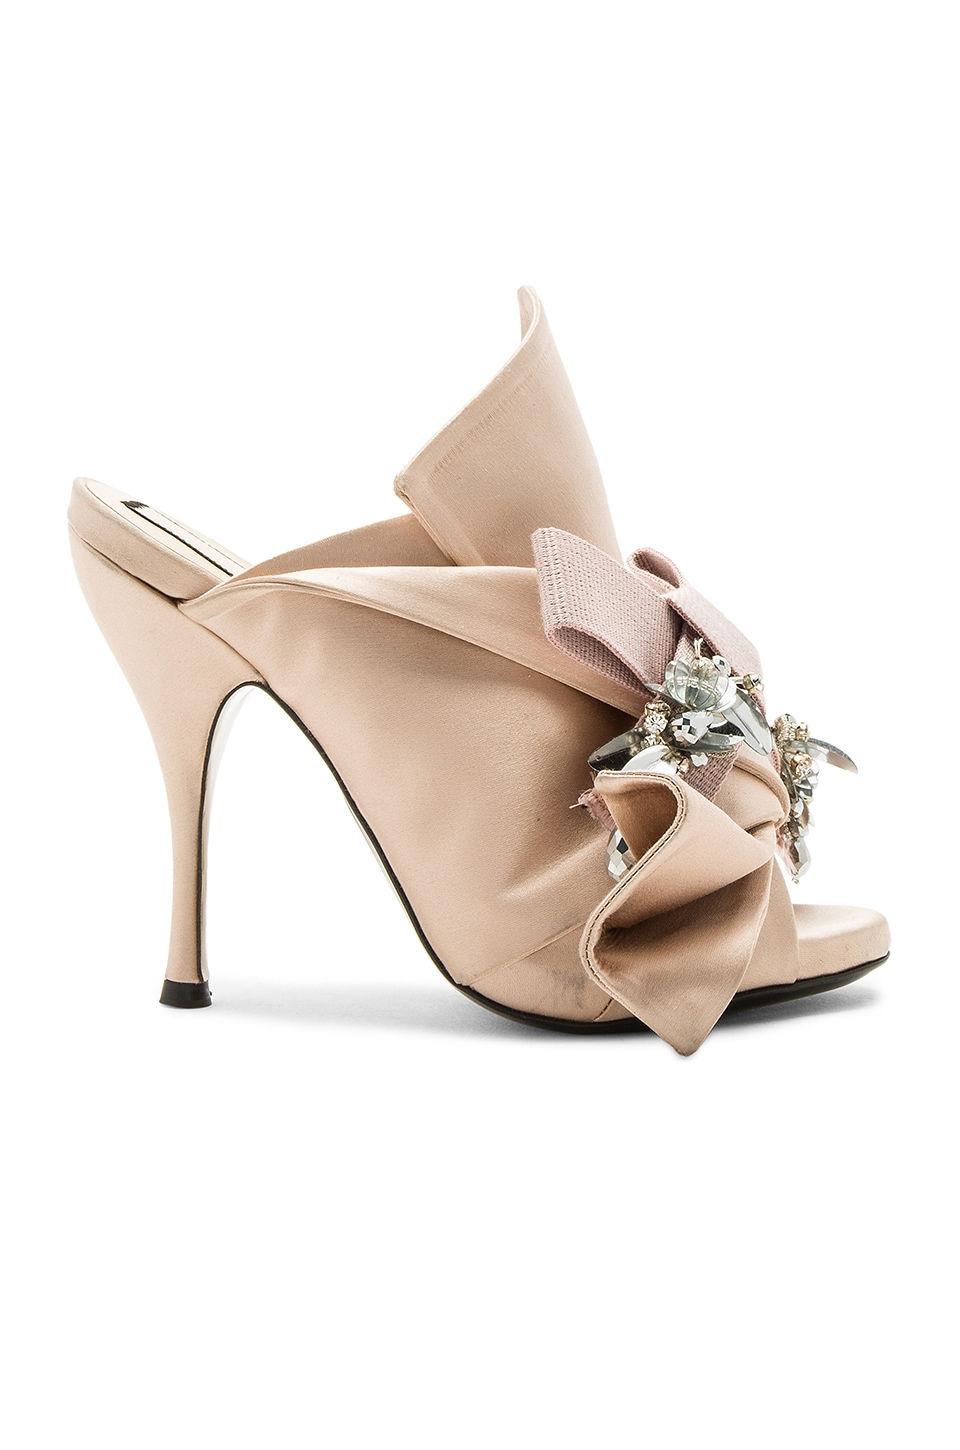 No. 21 Embellished Bow Mule in Raso Cipria